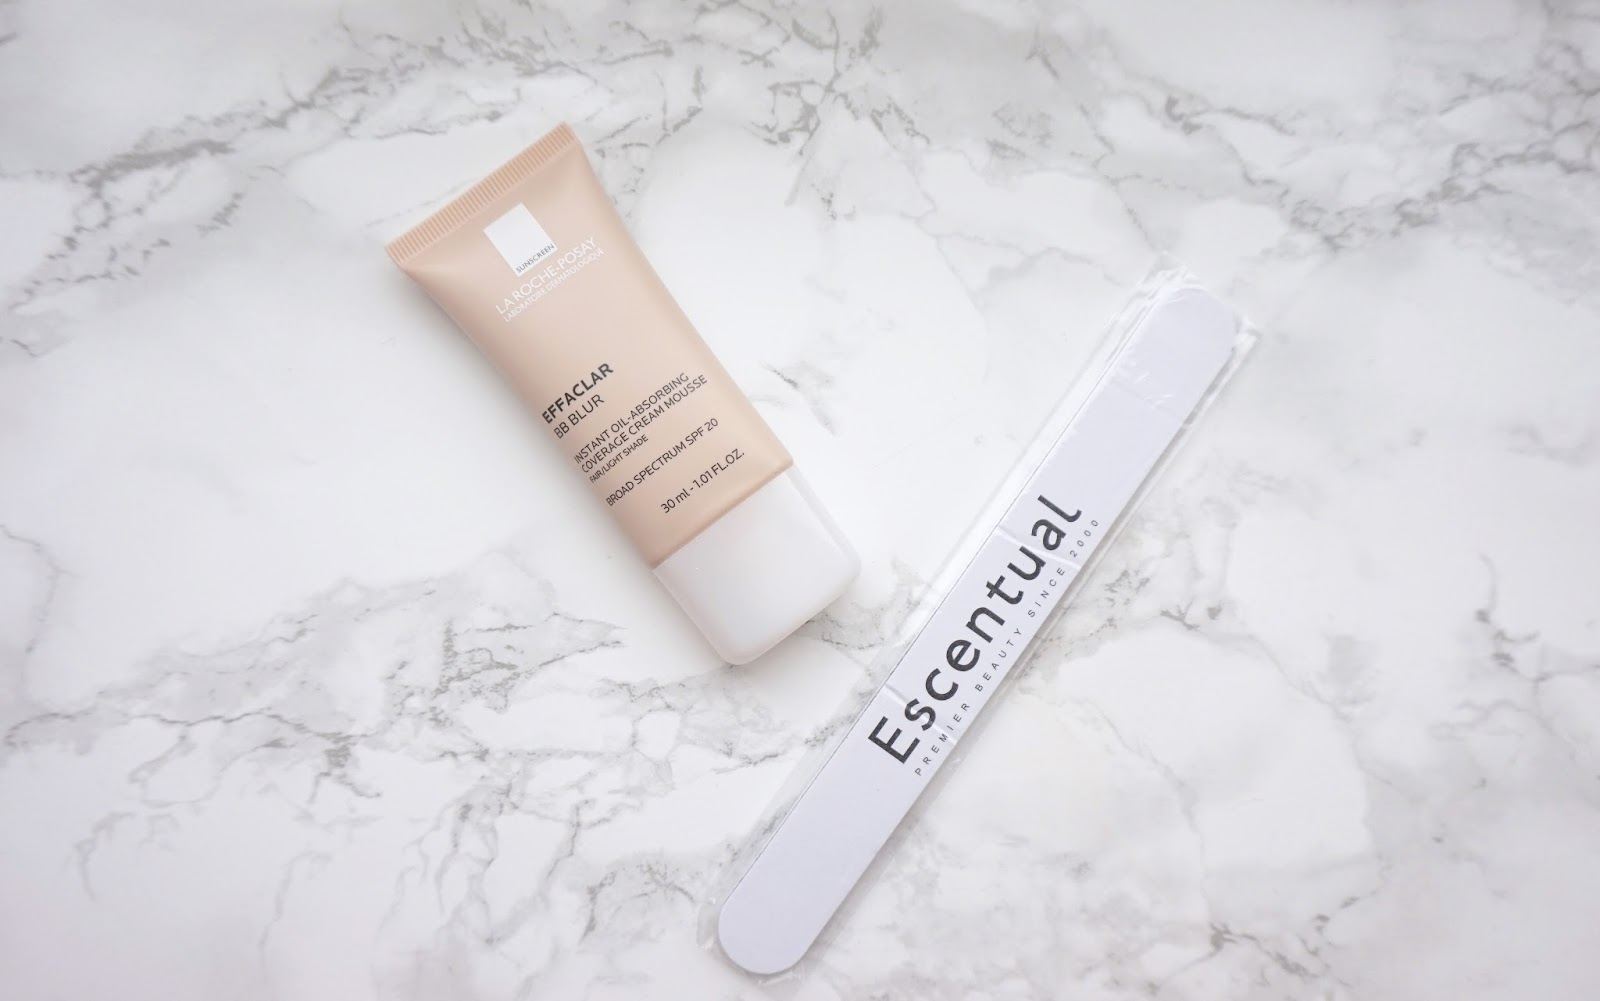 View more La Roche-Posay Effaclar BB Blur Review